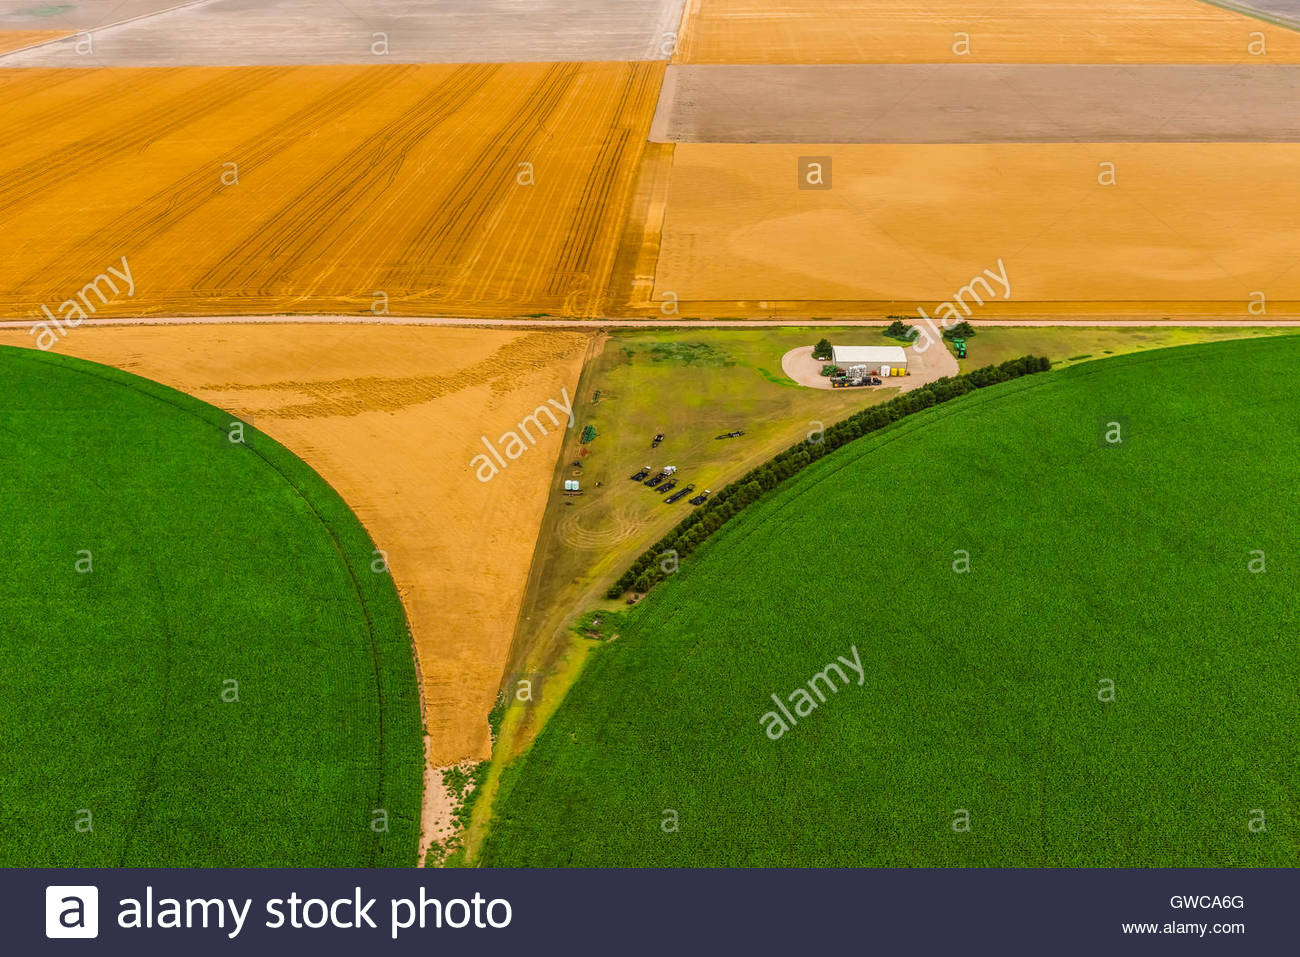 Aerial view of corn and wheat fields, Goodland, Kansas USA. - Stock Image